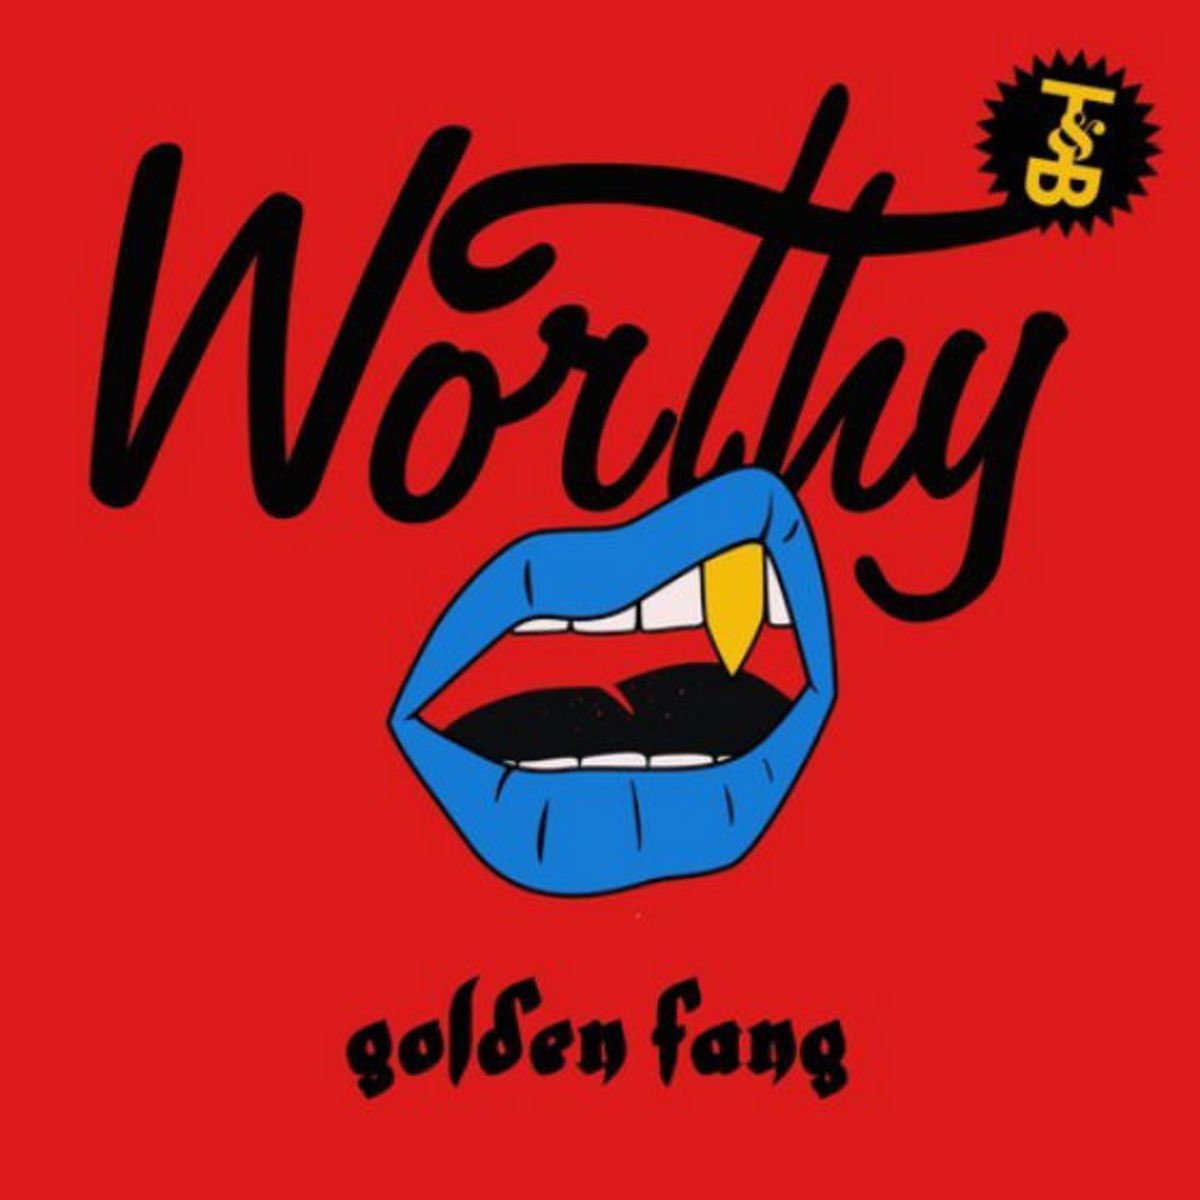 worthy-golden-fang